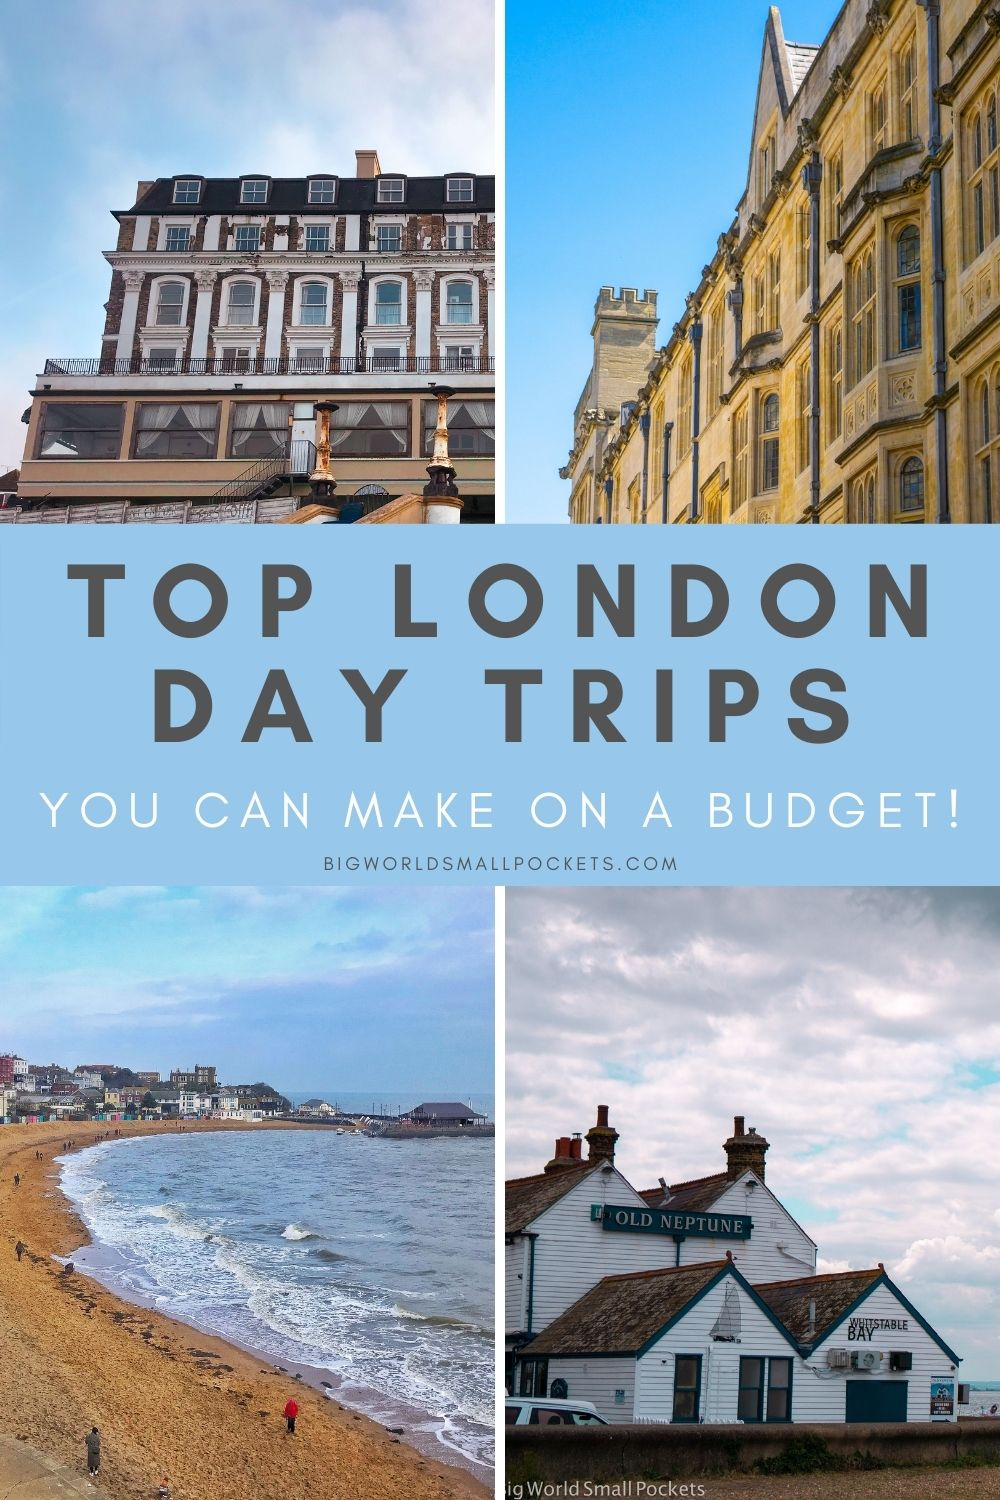 Best London Day Trips for Budget Travellers